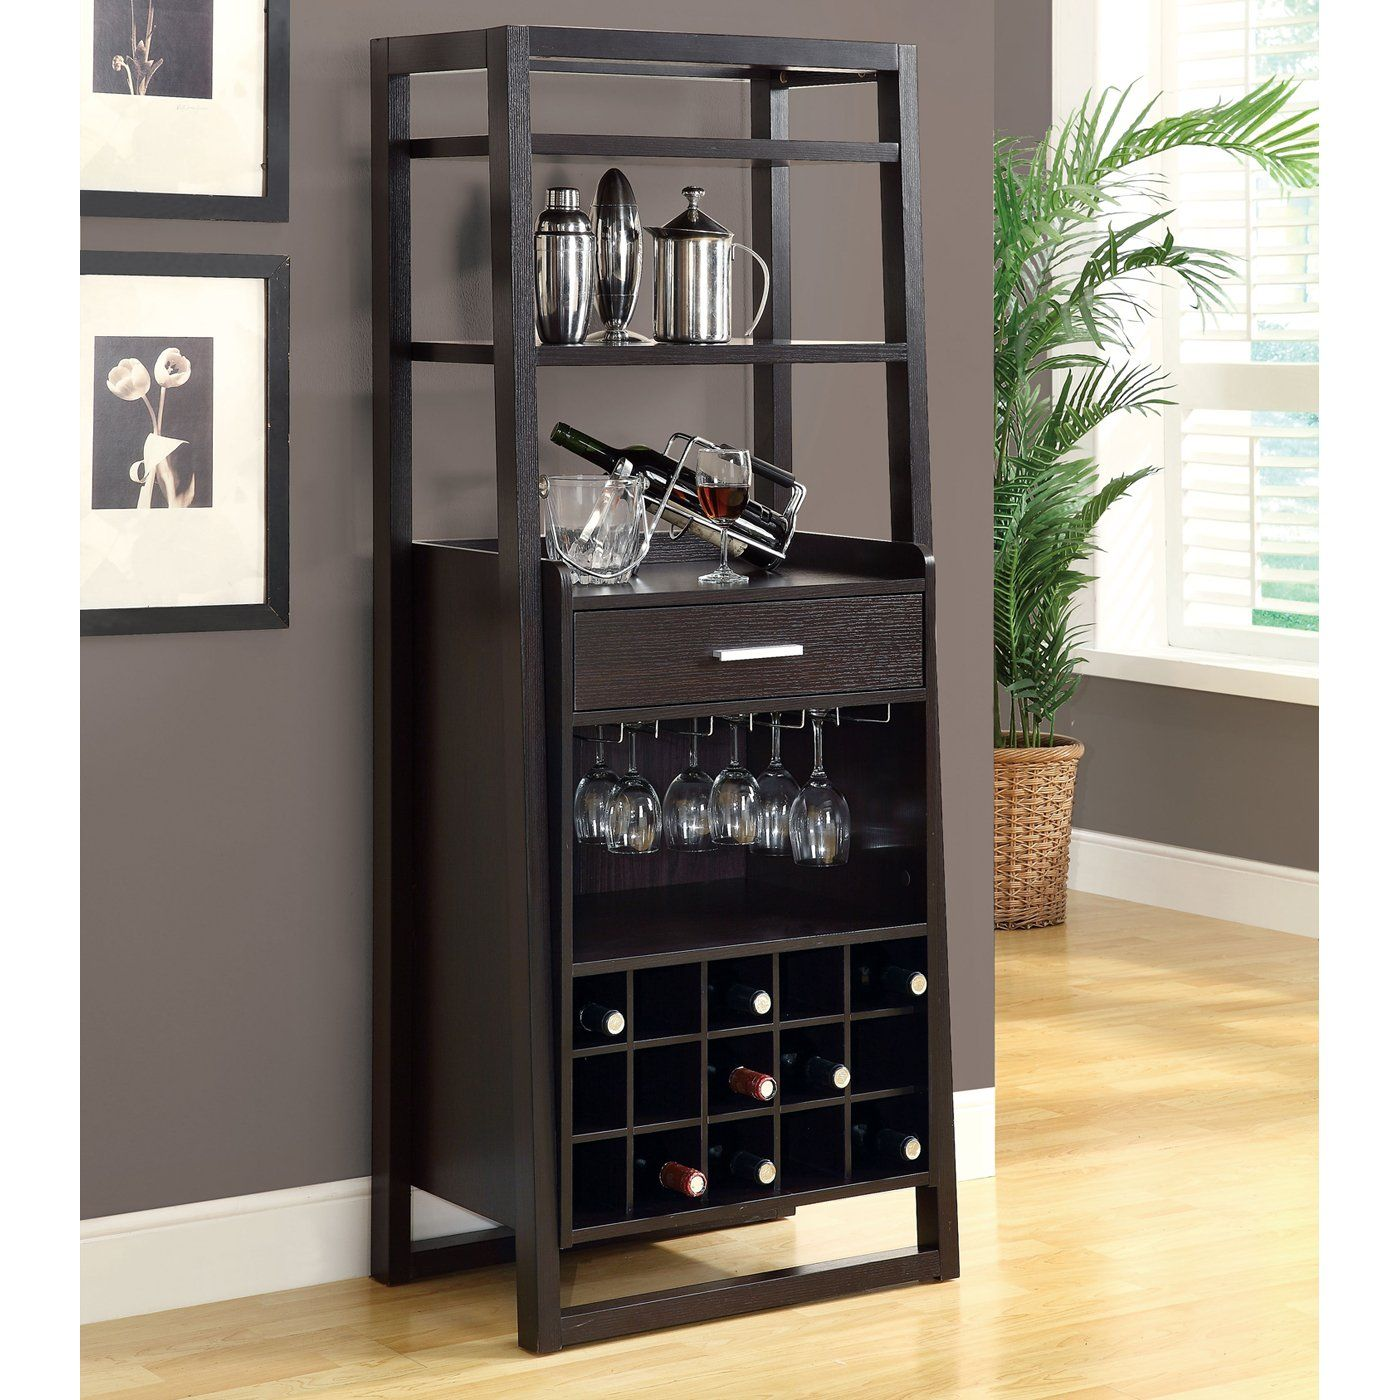 Monarch Specialties I 2543 Ladder Style Bar Cabinet 267 Could Fit 2